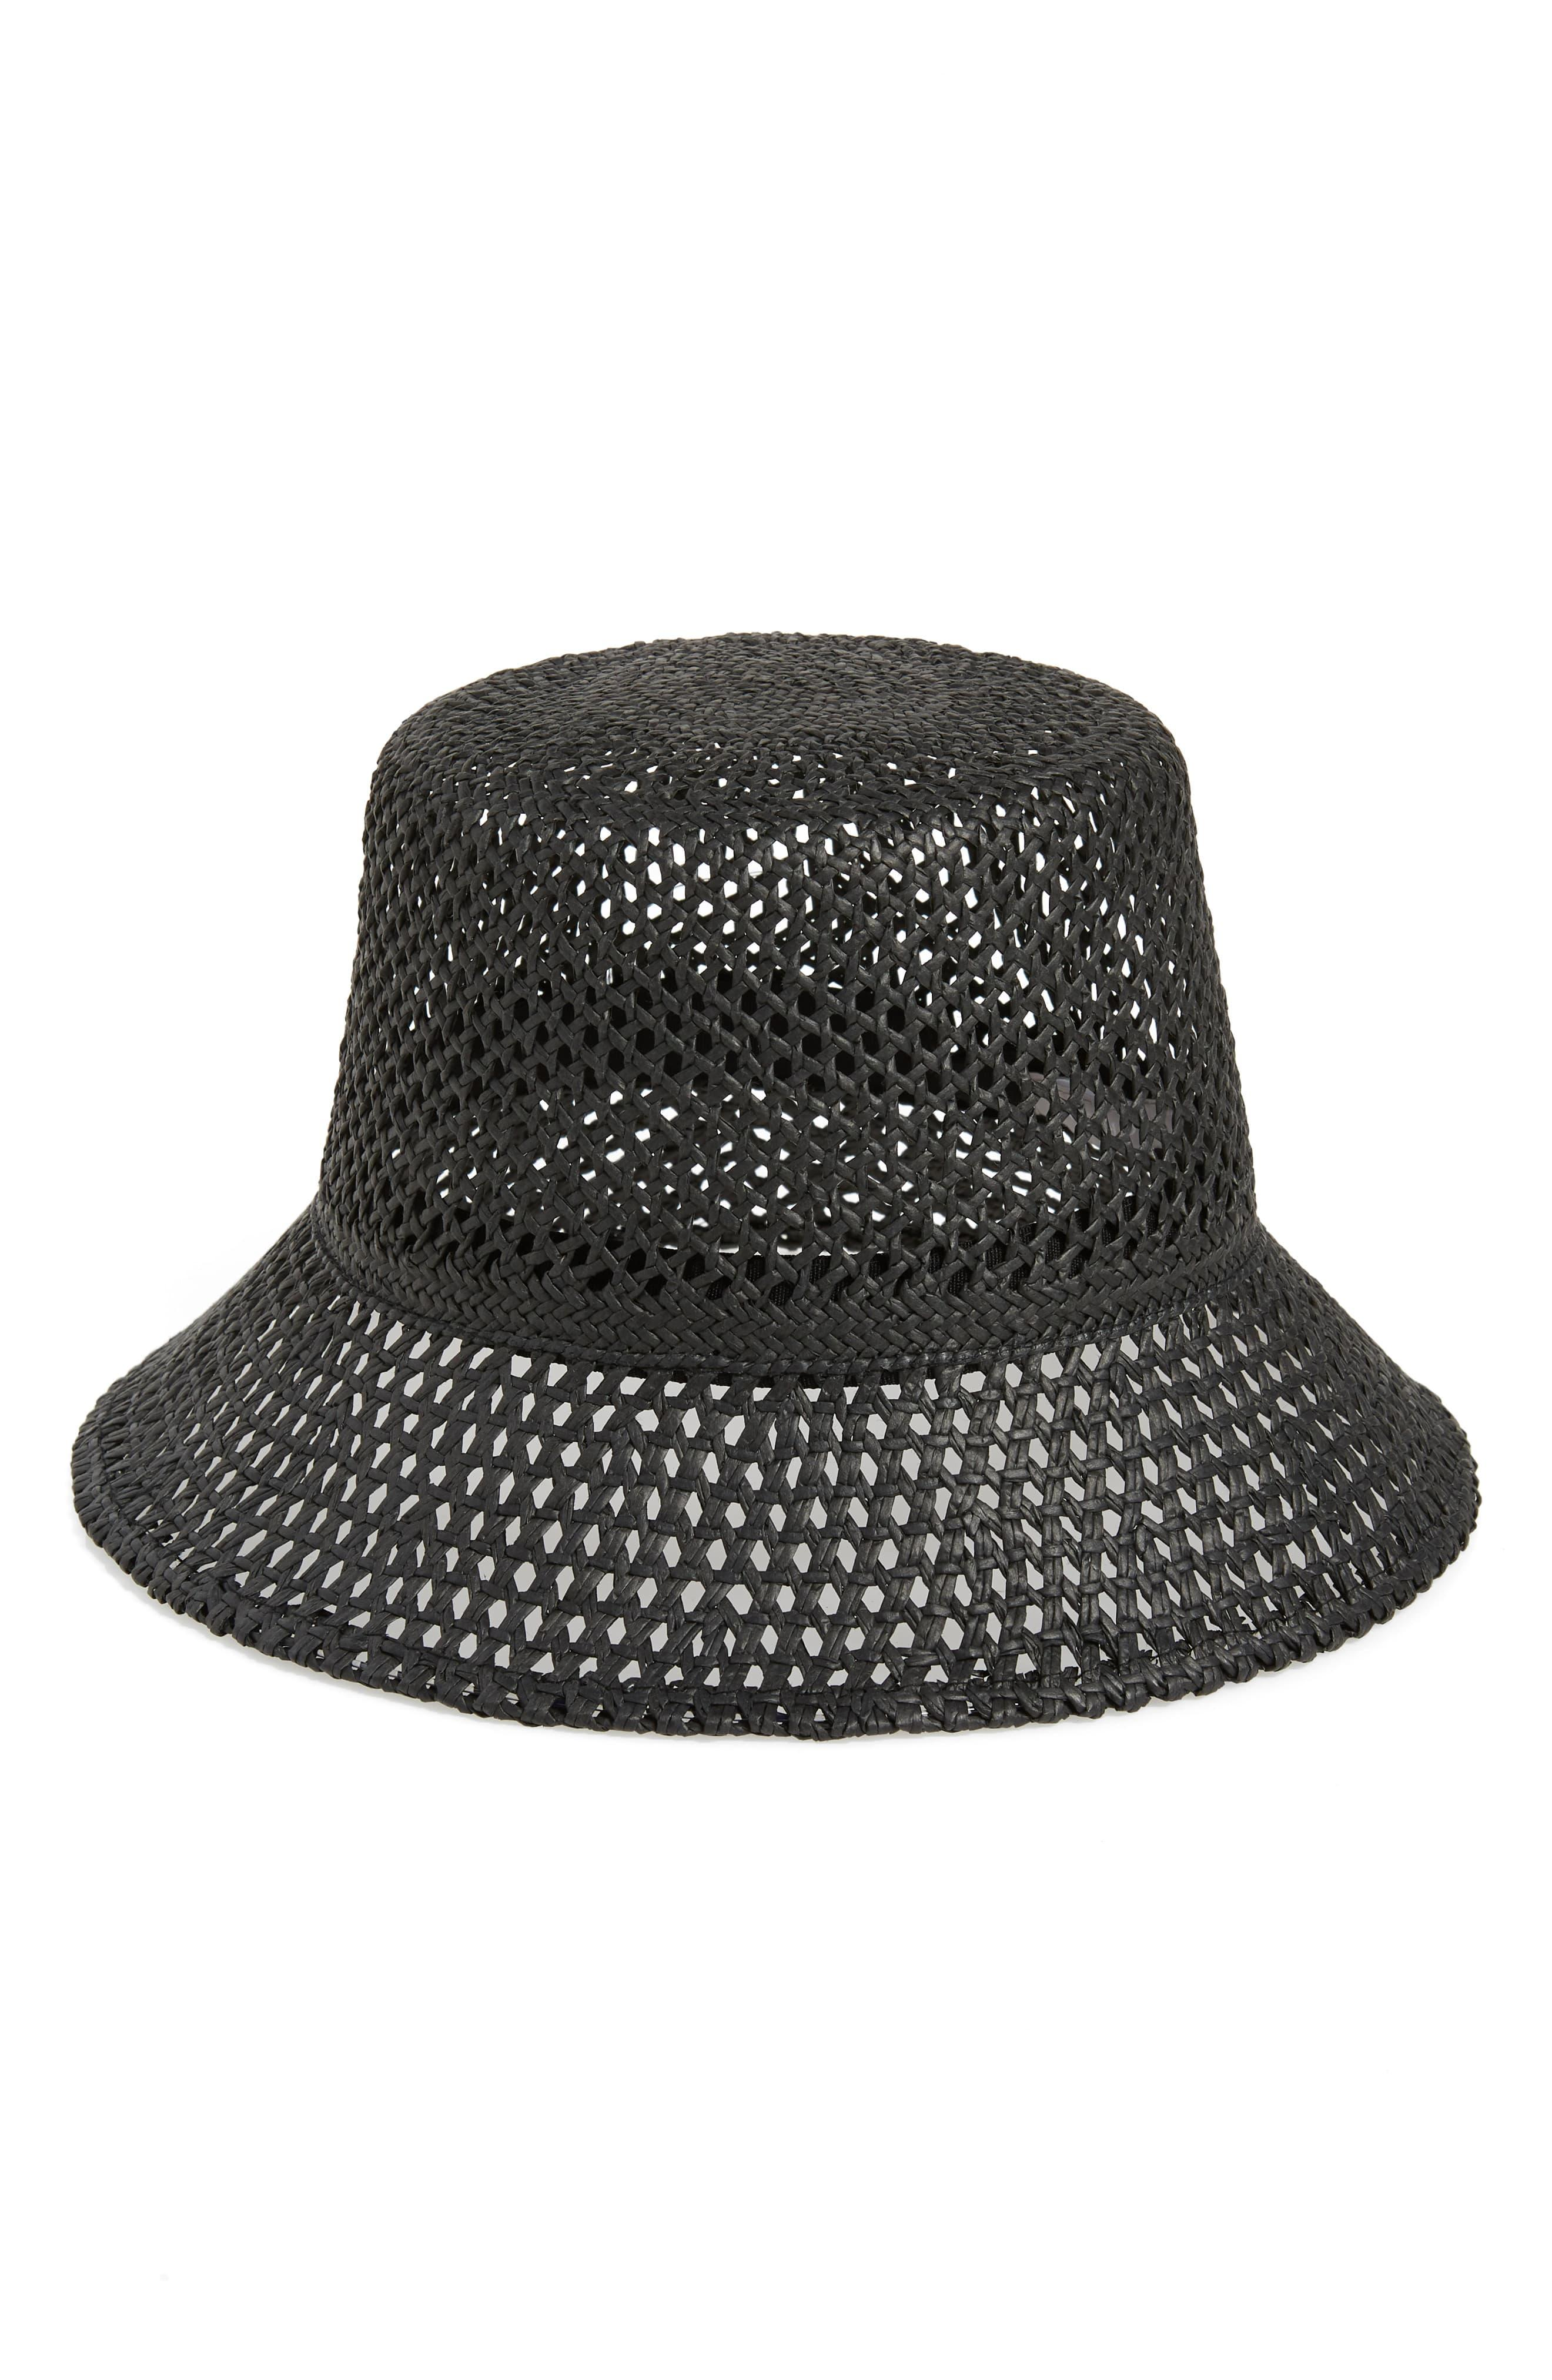 d9fb4bf295efe Nordstrom Open Weave Straw Bucket Hat in Black - Lyst